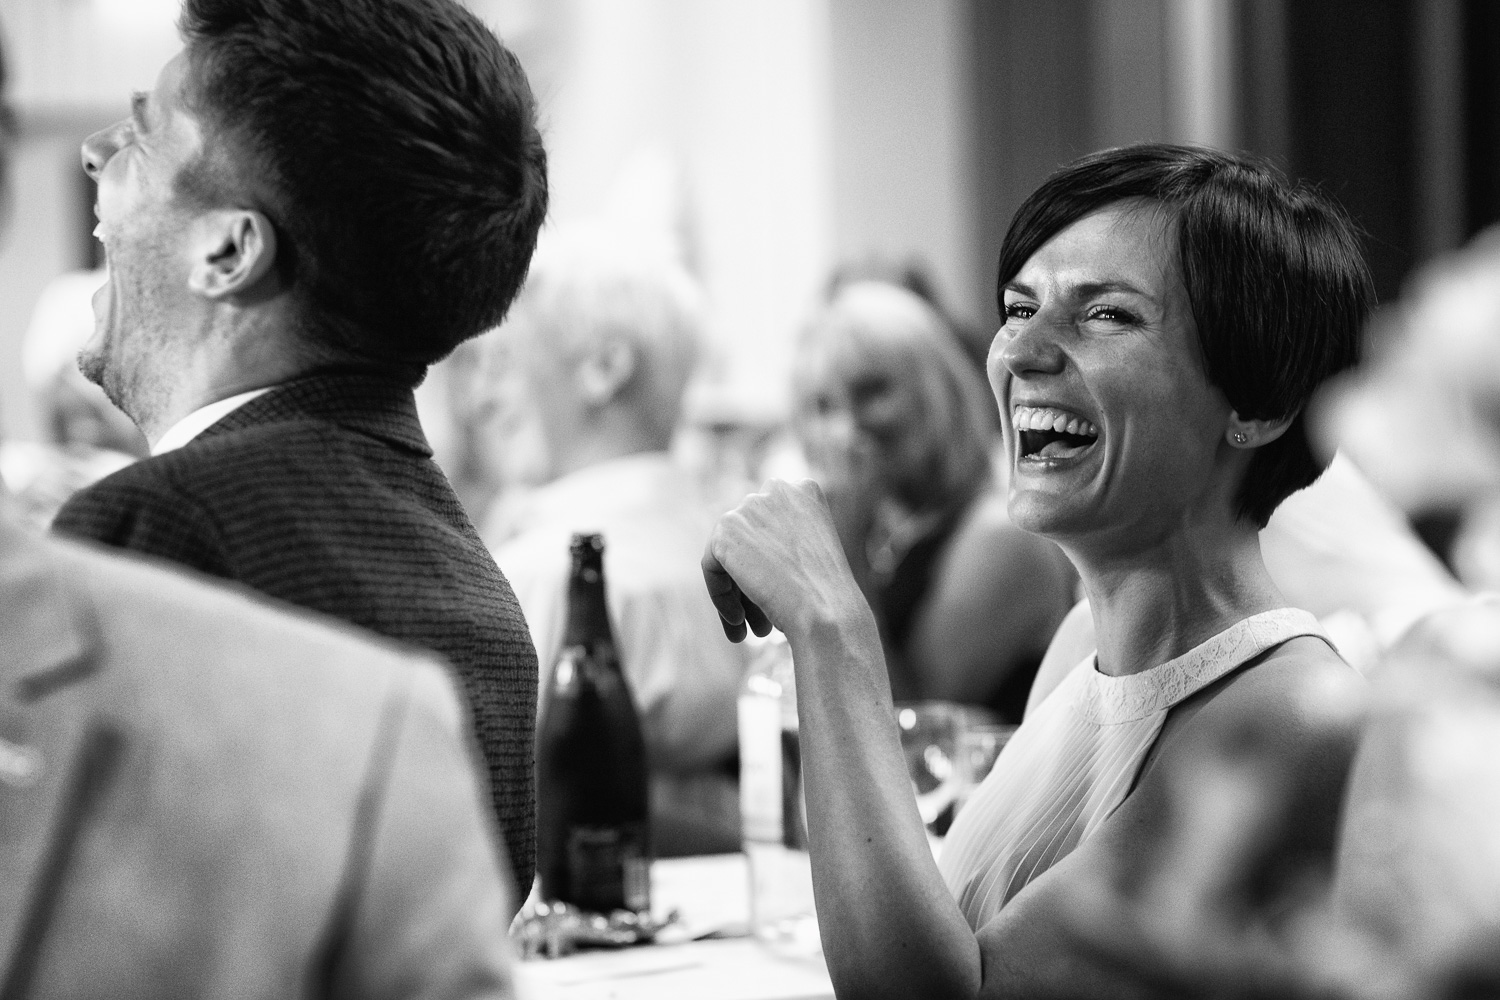 Laughter is infectious. We all feel good from its positive energy.